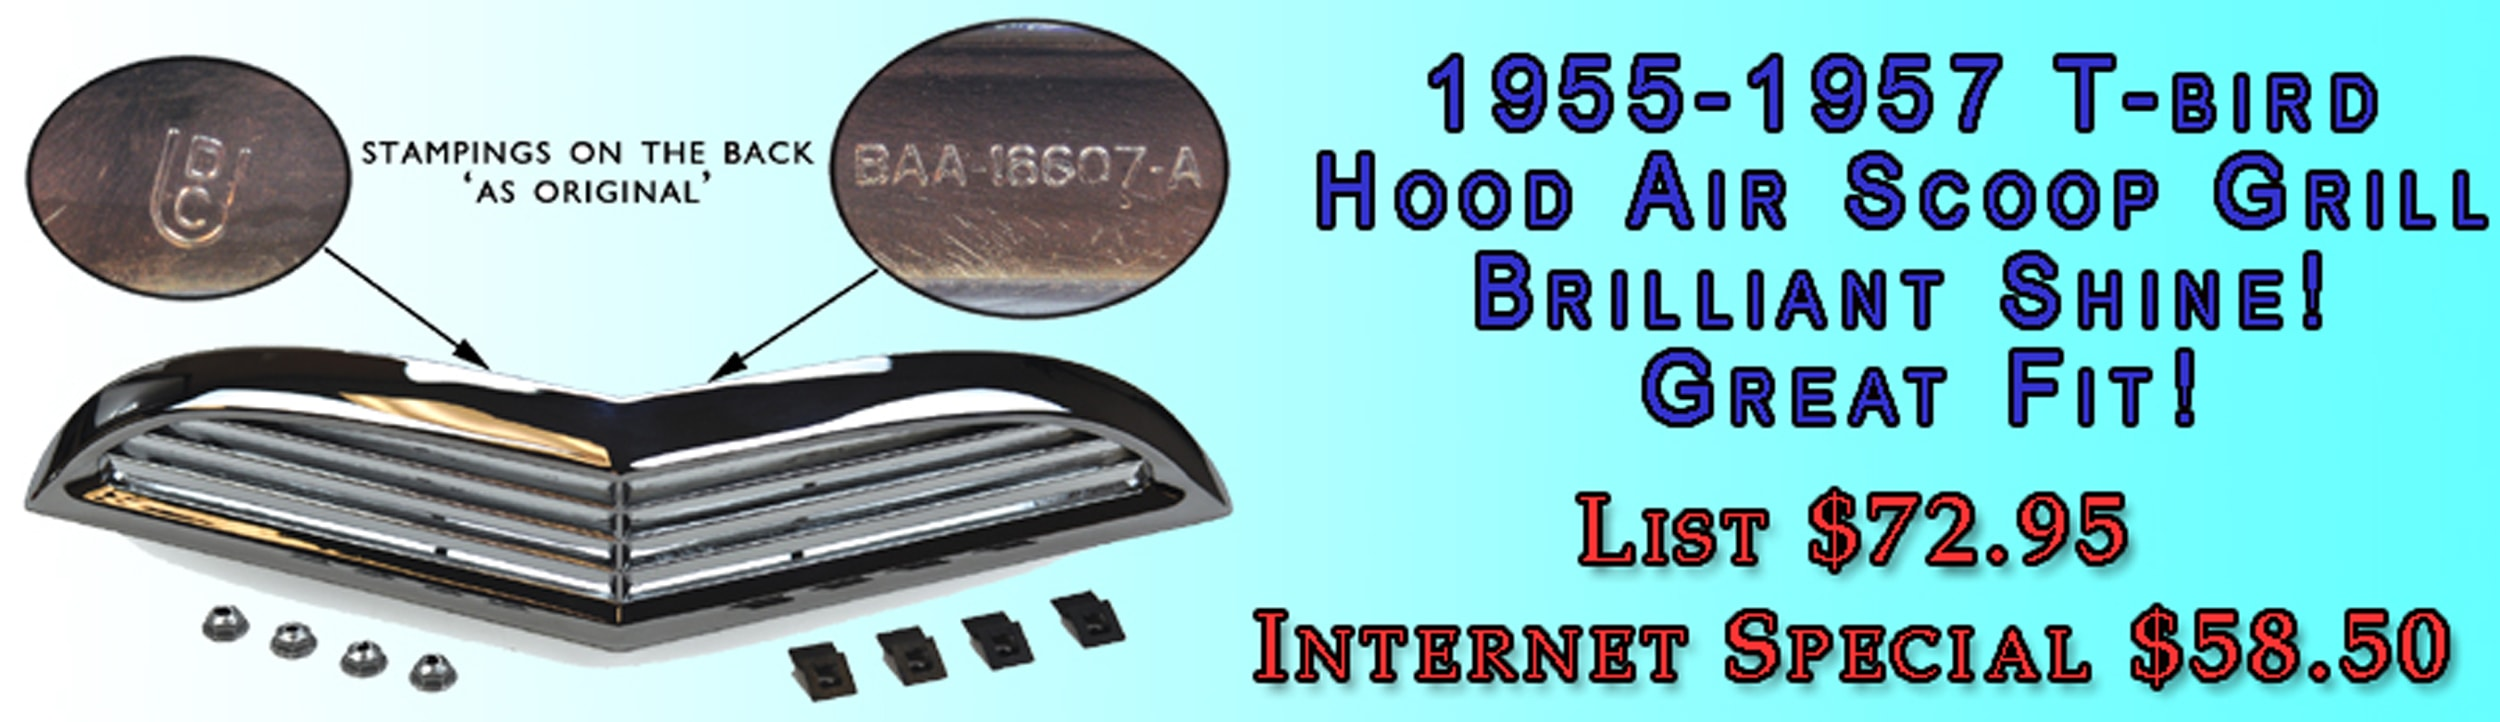 Ford Restoration Parts For Classic Thunderbird Cars Trucks 1955 F100 Truck Project 1957 T Bird Hood Air Scoop Grill